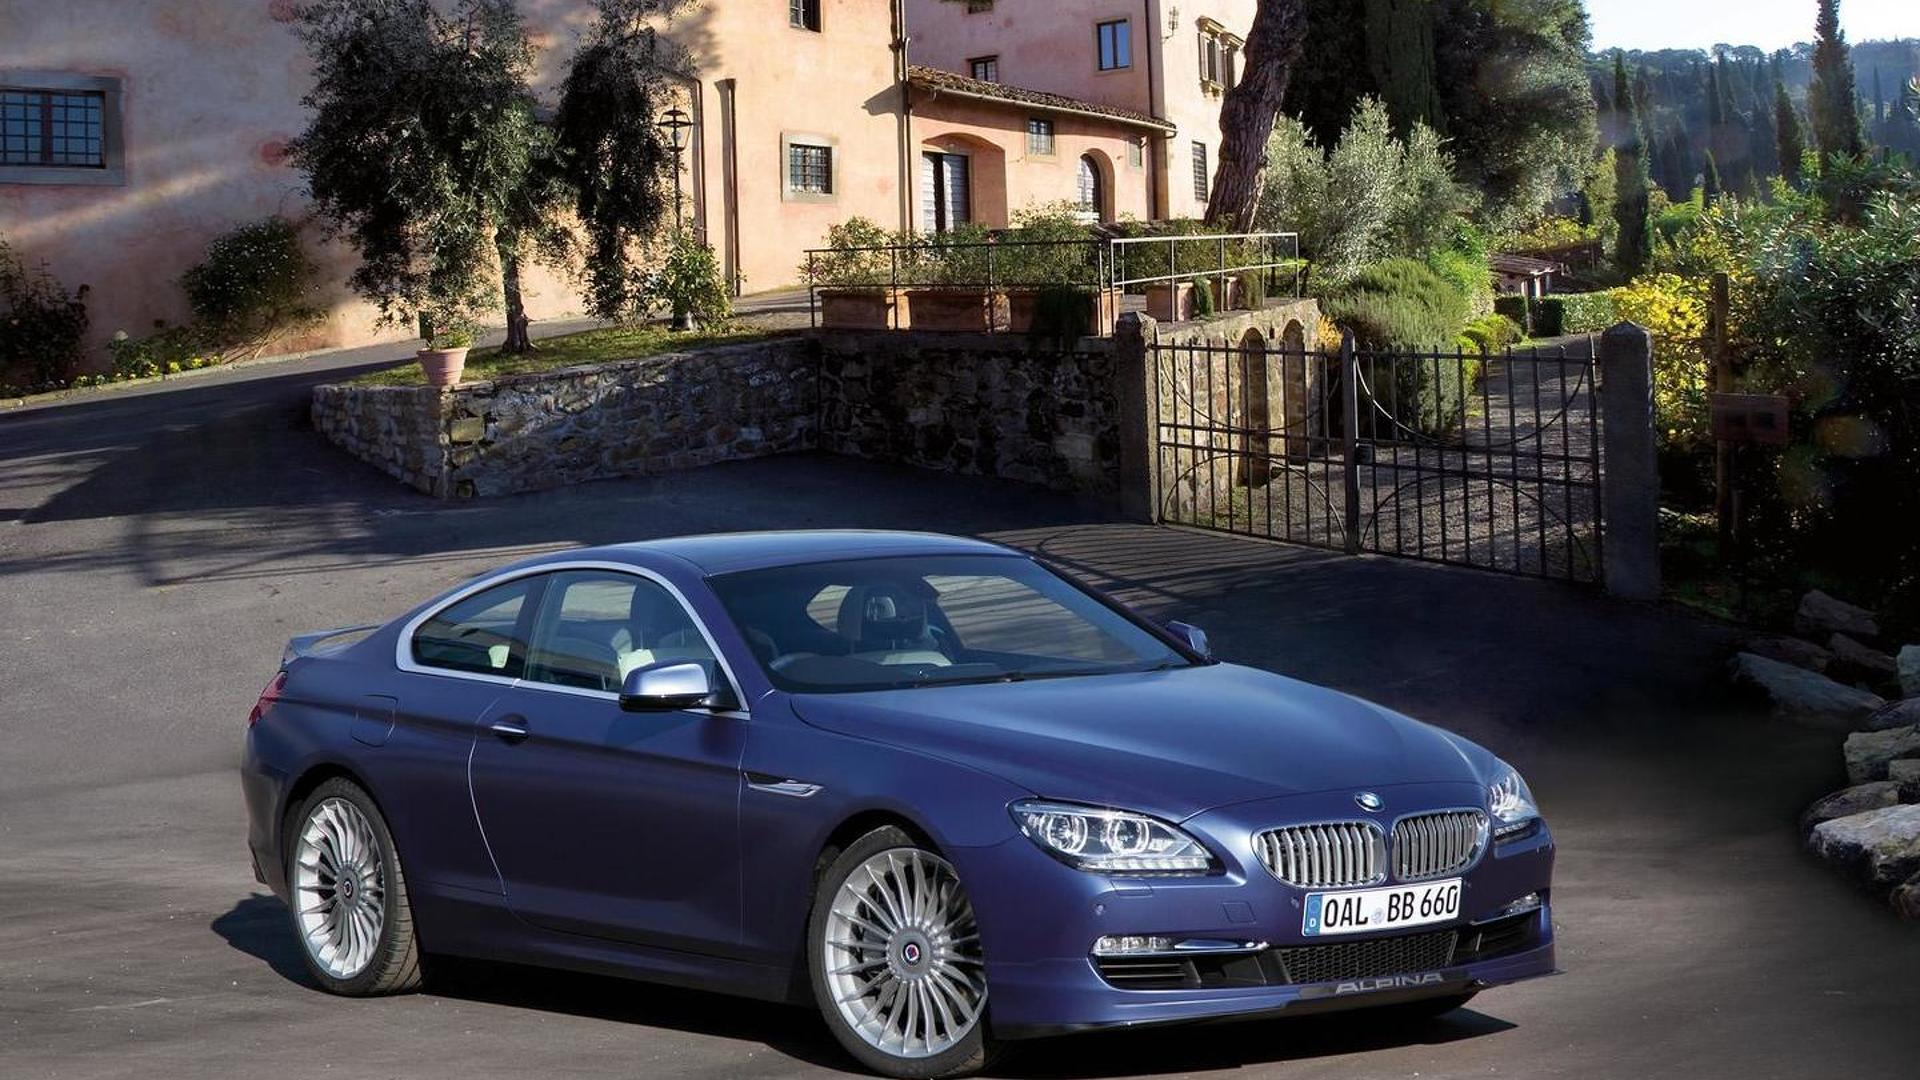 BMW Alpina B BiTurbo Coupe - Alpina bmw b6